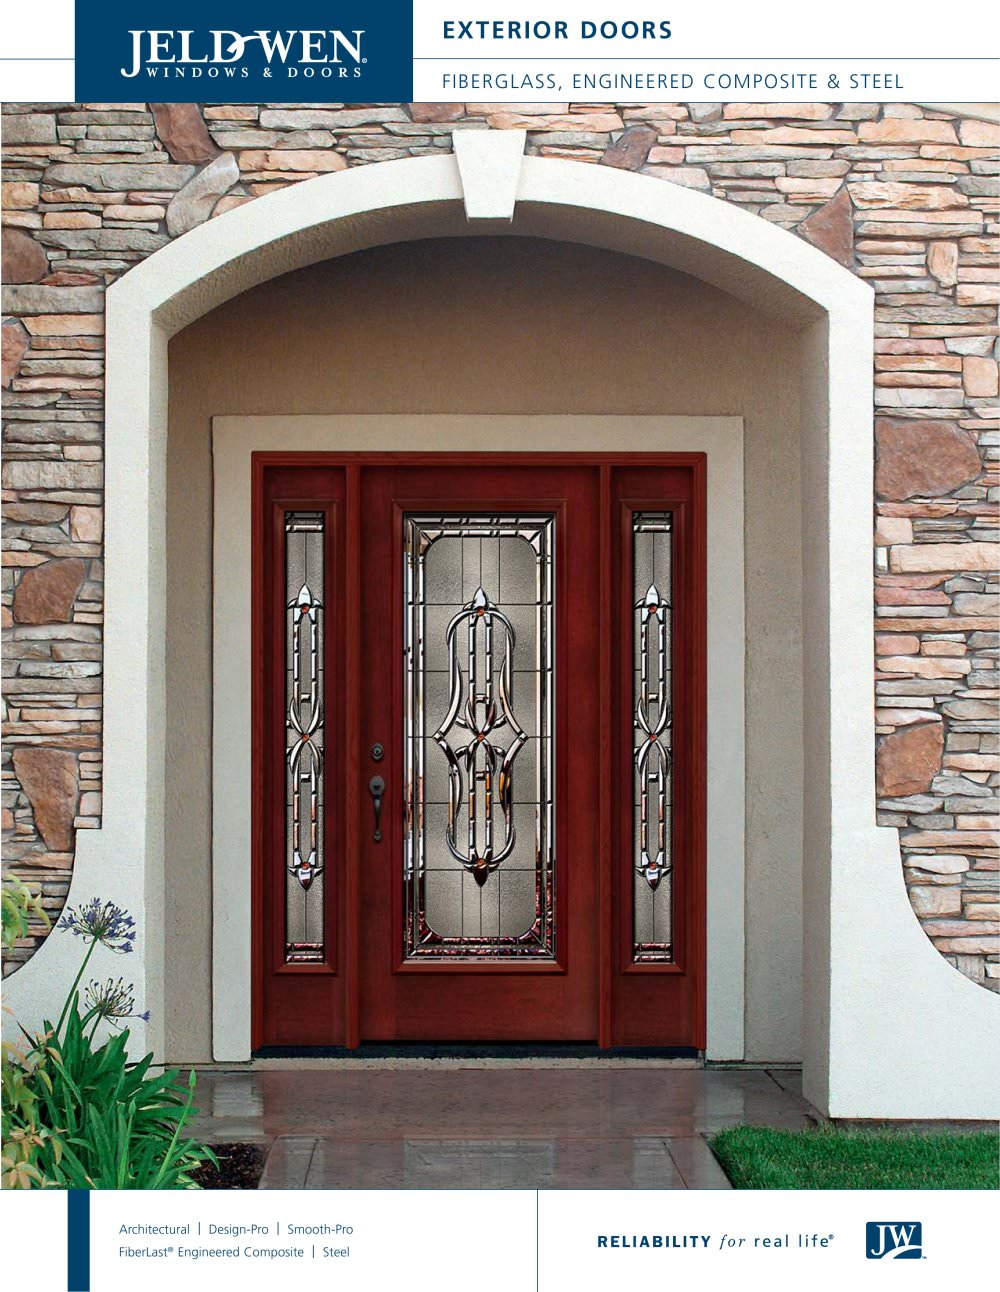 Fiberglass And Steel Exterior Doors JELD WEN PDF Catalogues